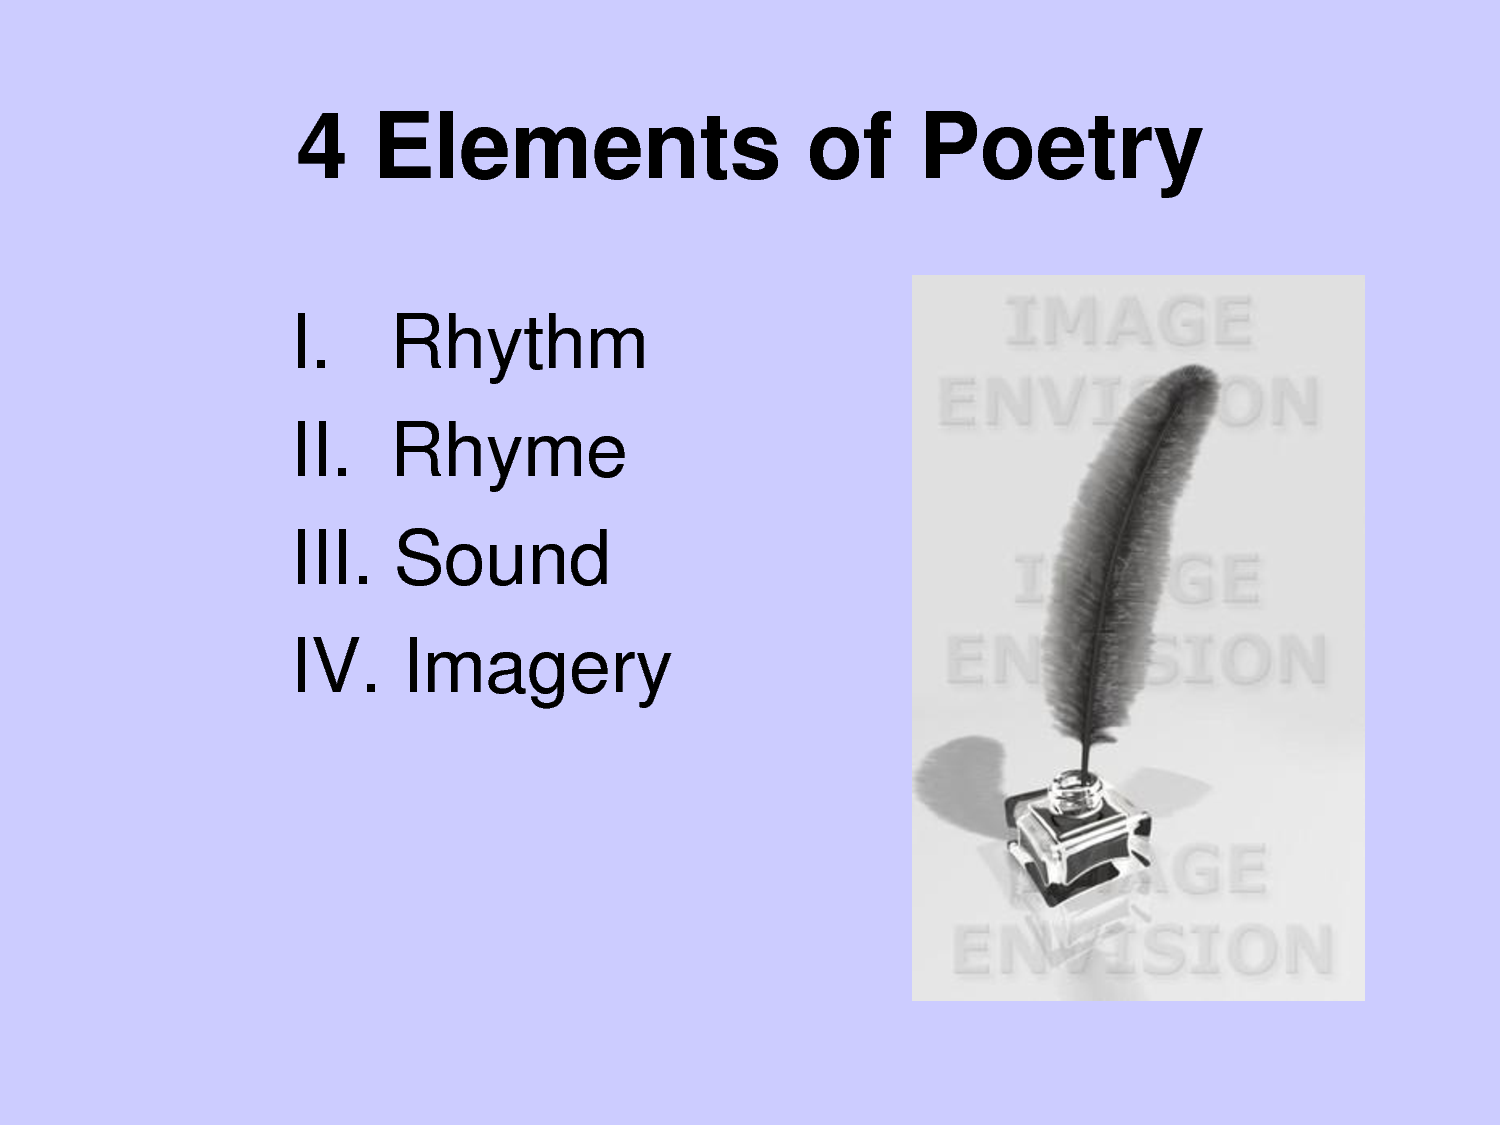 two basic elements of a lyric poetry Lyric poetry is a formal type of poetry which expresses personal emotions or feelings, typically spoken in the first person the term derives from a form of ancient greek literature, the lyric, which was defined by its musical accompaniment, usually on a stringed instrument known as a lyre.